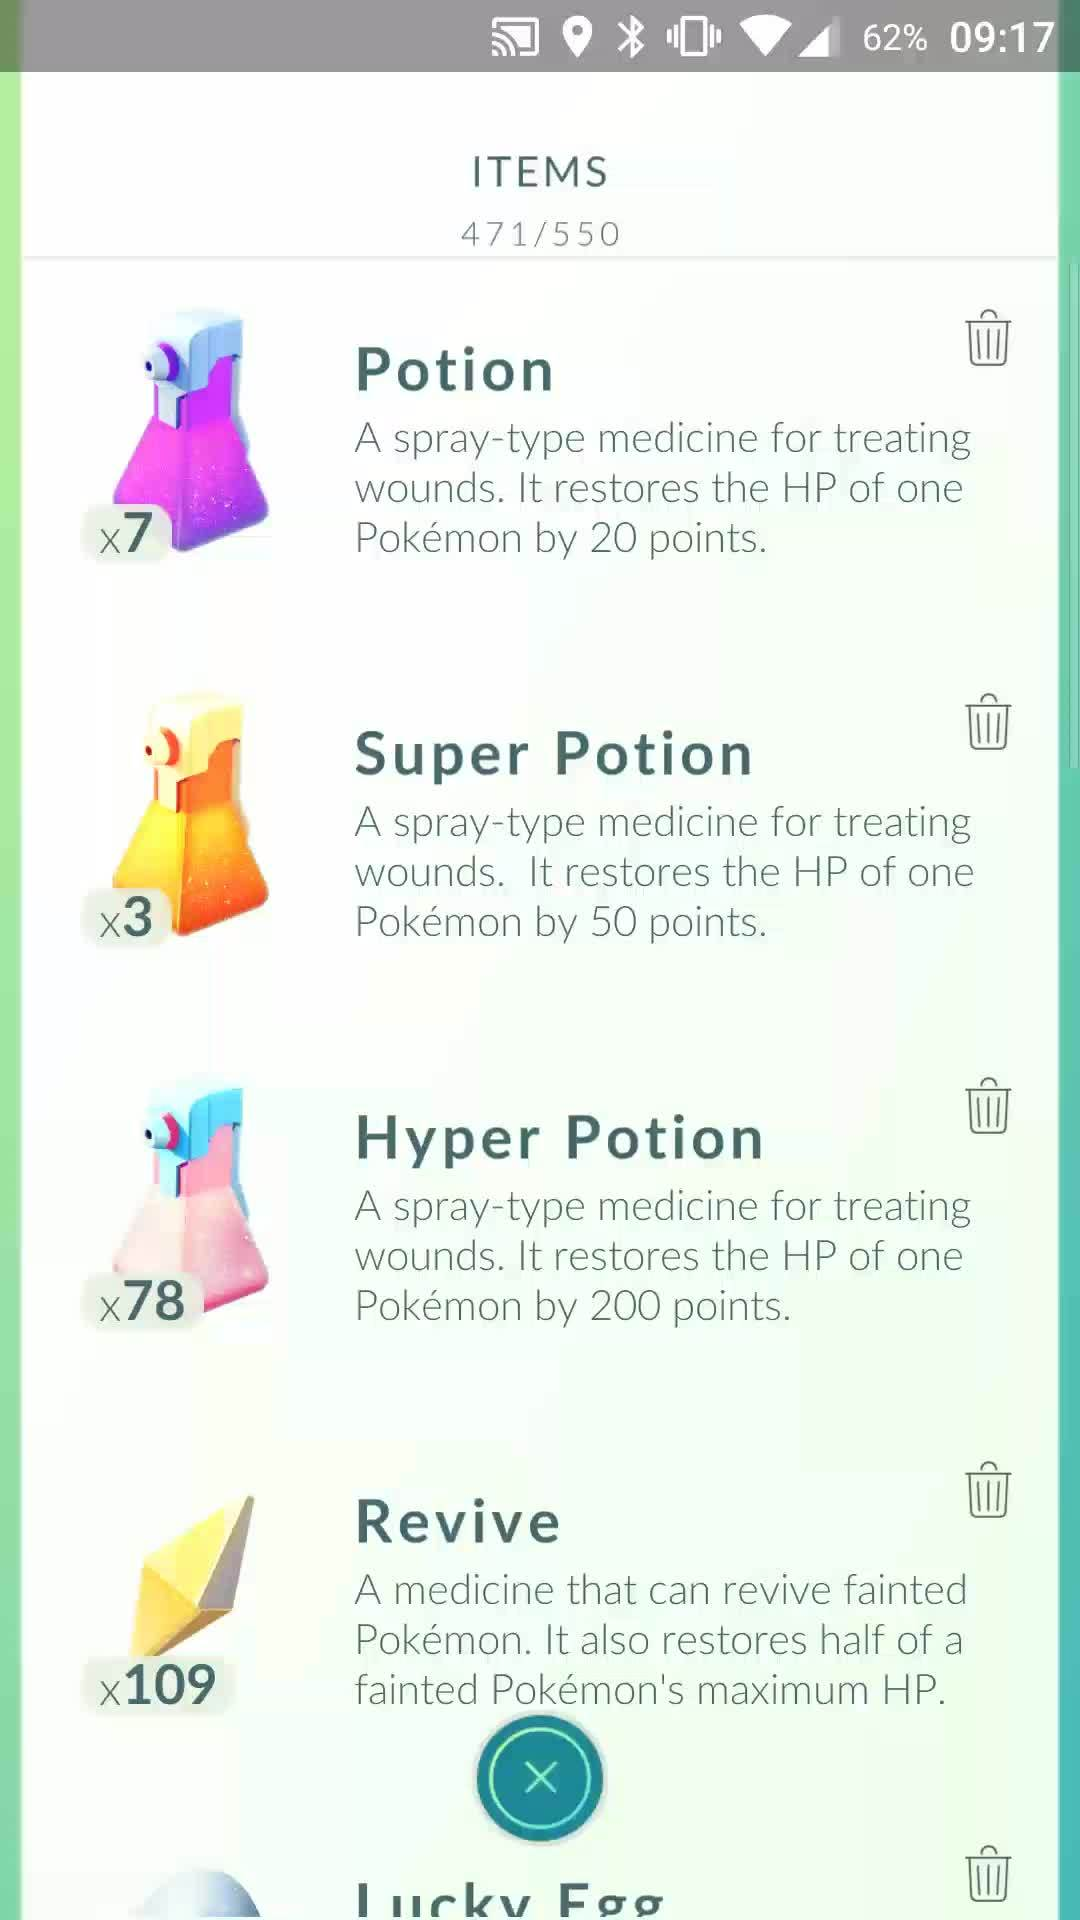 TheSilphRoad, thesilphroad, PotionsForMaMons GIFs